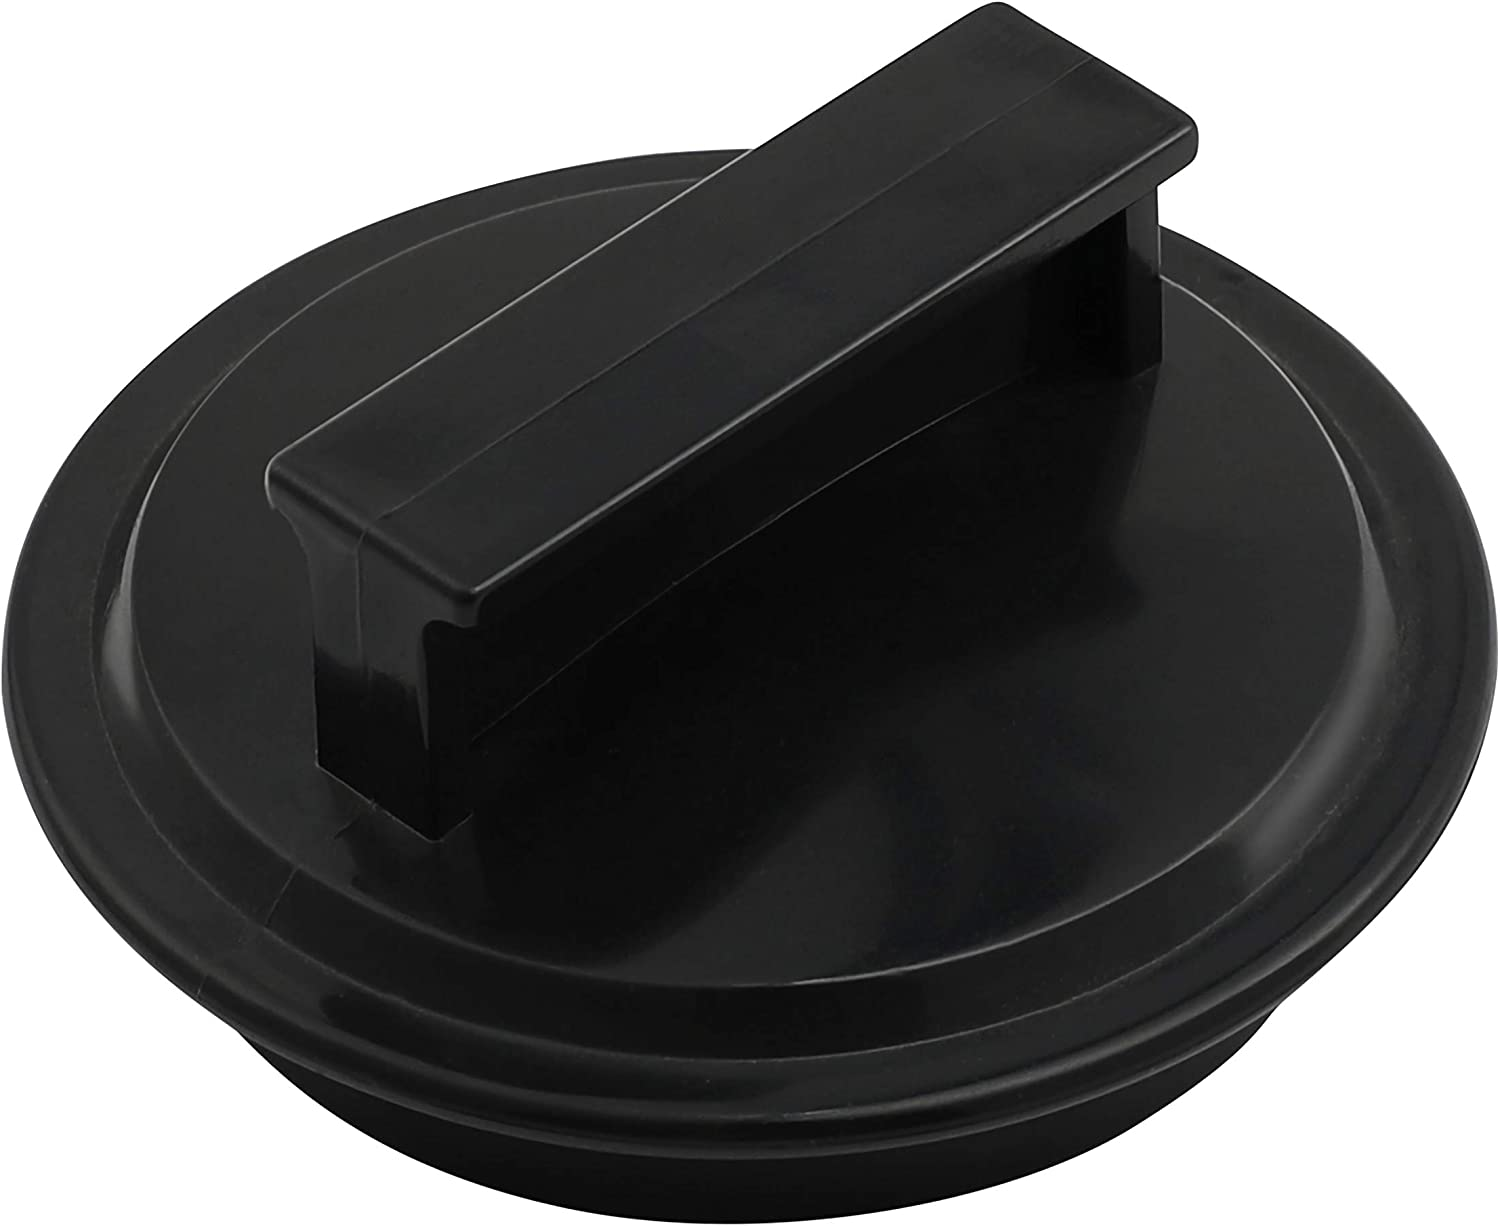 Garbage Disposal Drain Stopper, 2 7/8 Inch (7.5cm), Plastic Black Garbage Disposal Plug For Most Waste King Garbage Disposer and Other EZ Mount Disposals